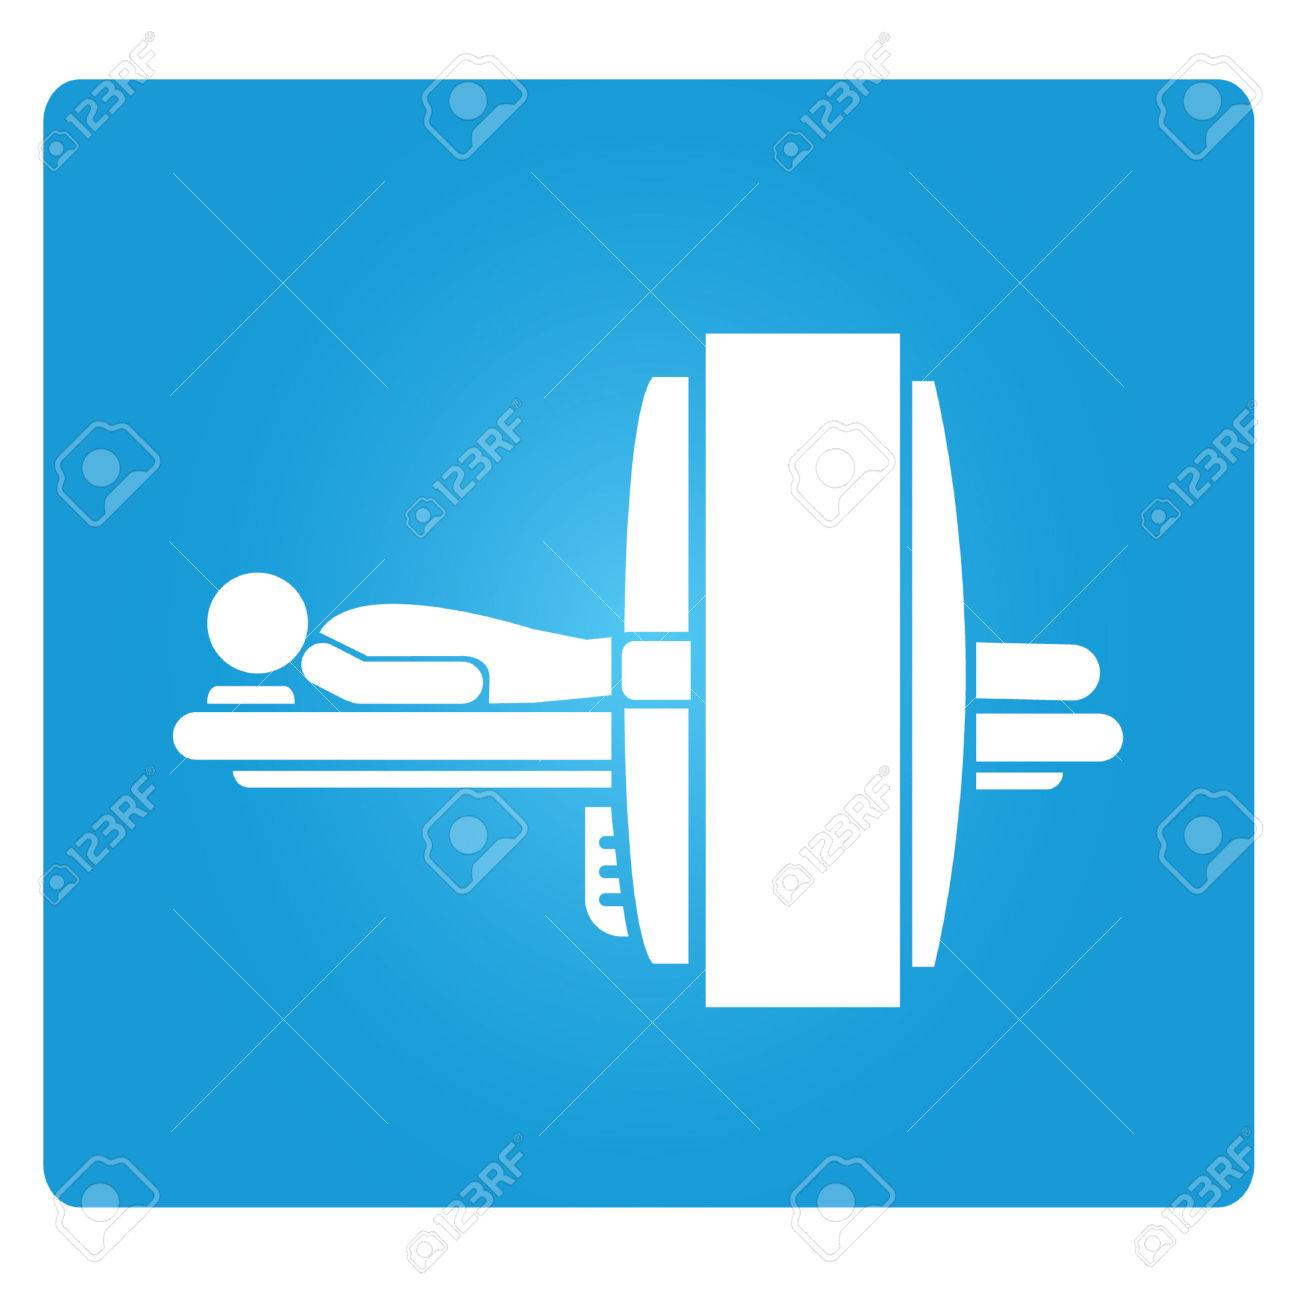 Medical tech symbol royalty free cliparts vectors and stock medical tech symbol stock vector 24427643 buycottarizona Image collections